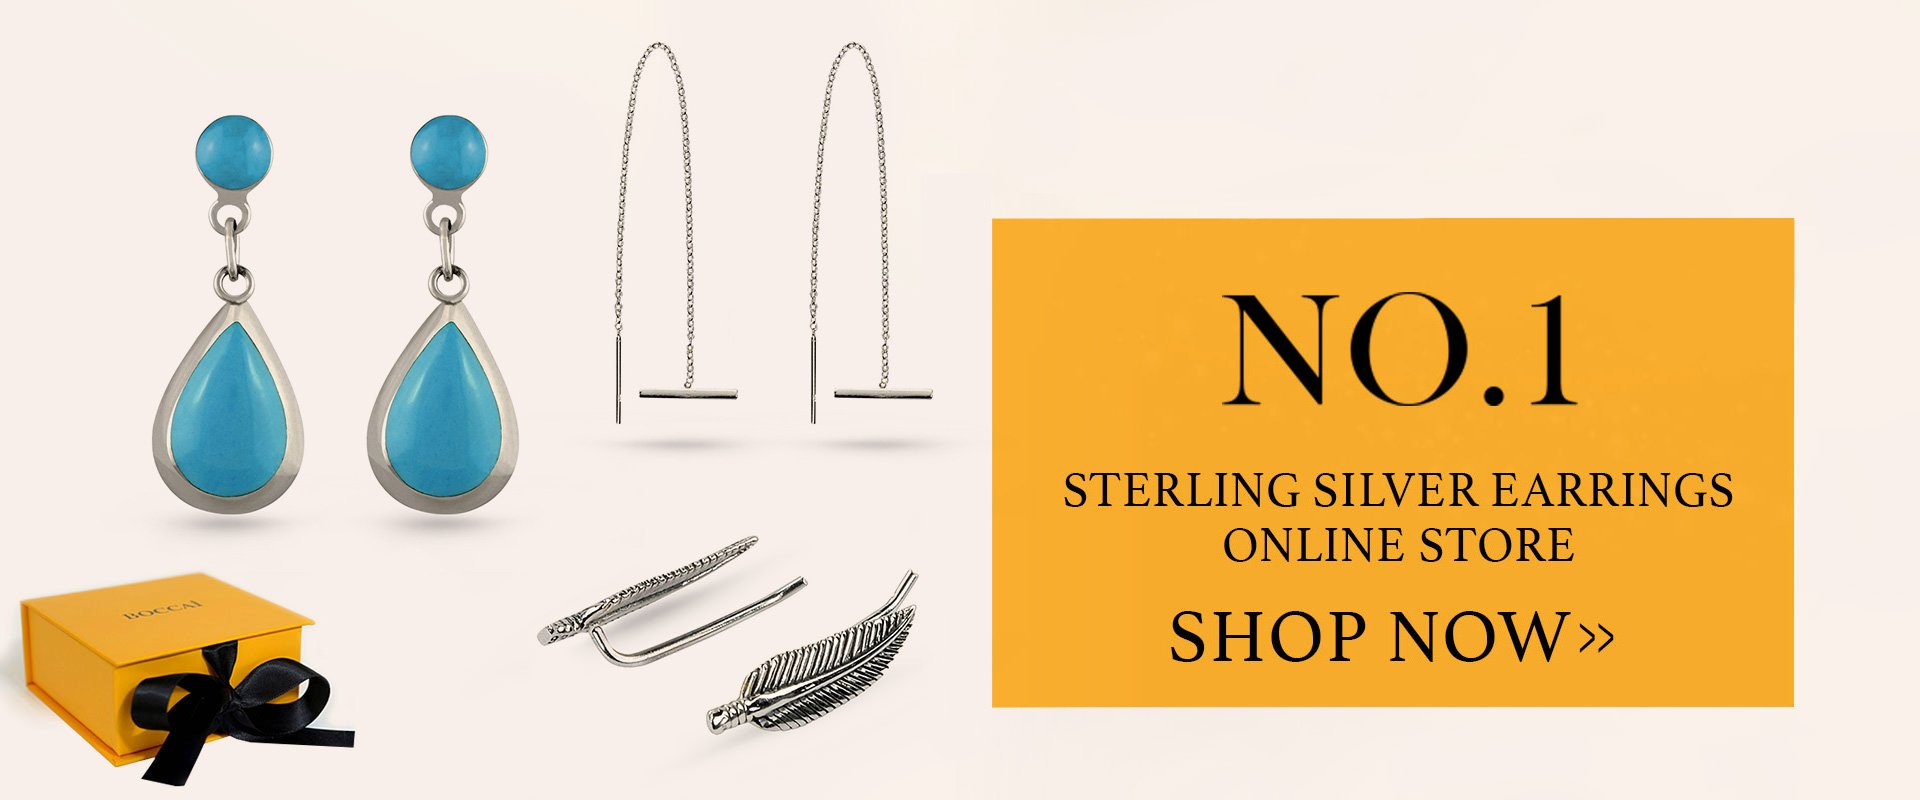 Boccai No.1 Sterling Silver Earrings Online Store